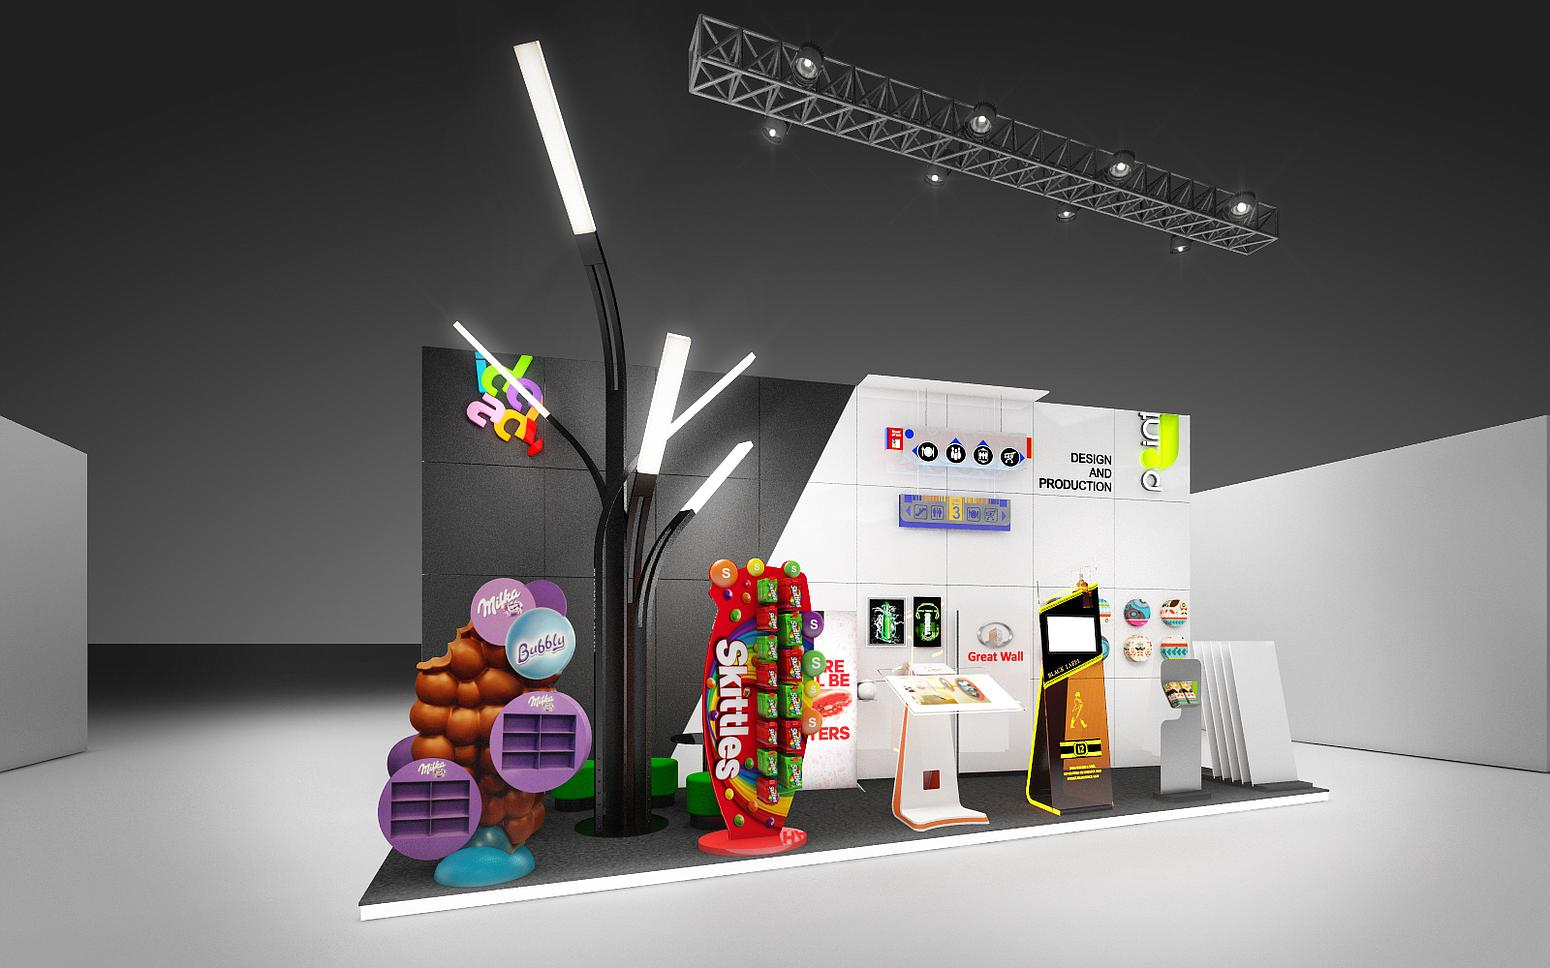 exhibition stand, POS materials, design and production